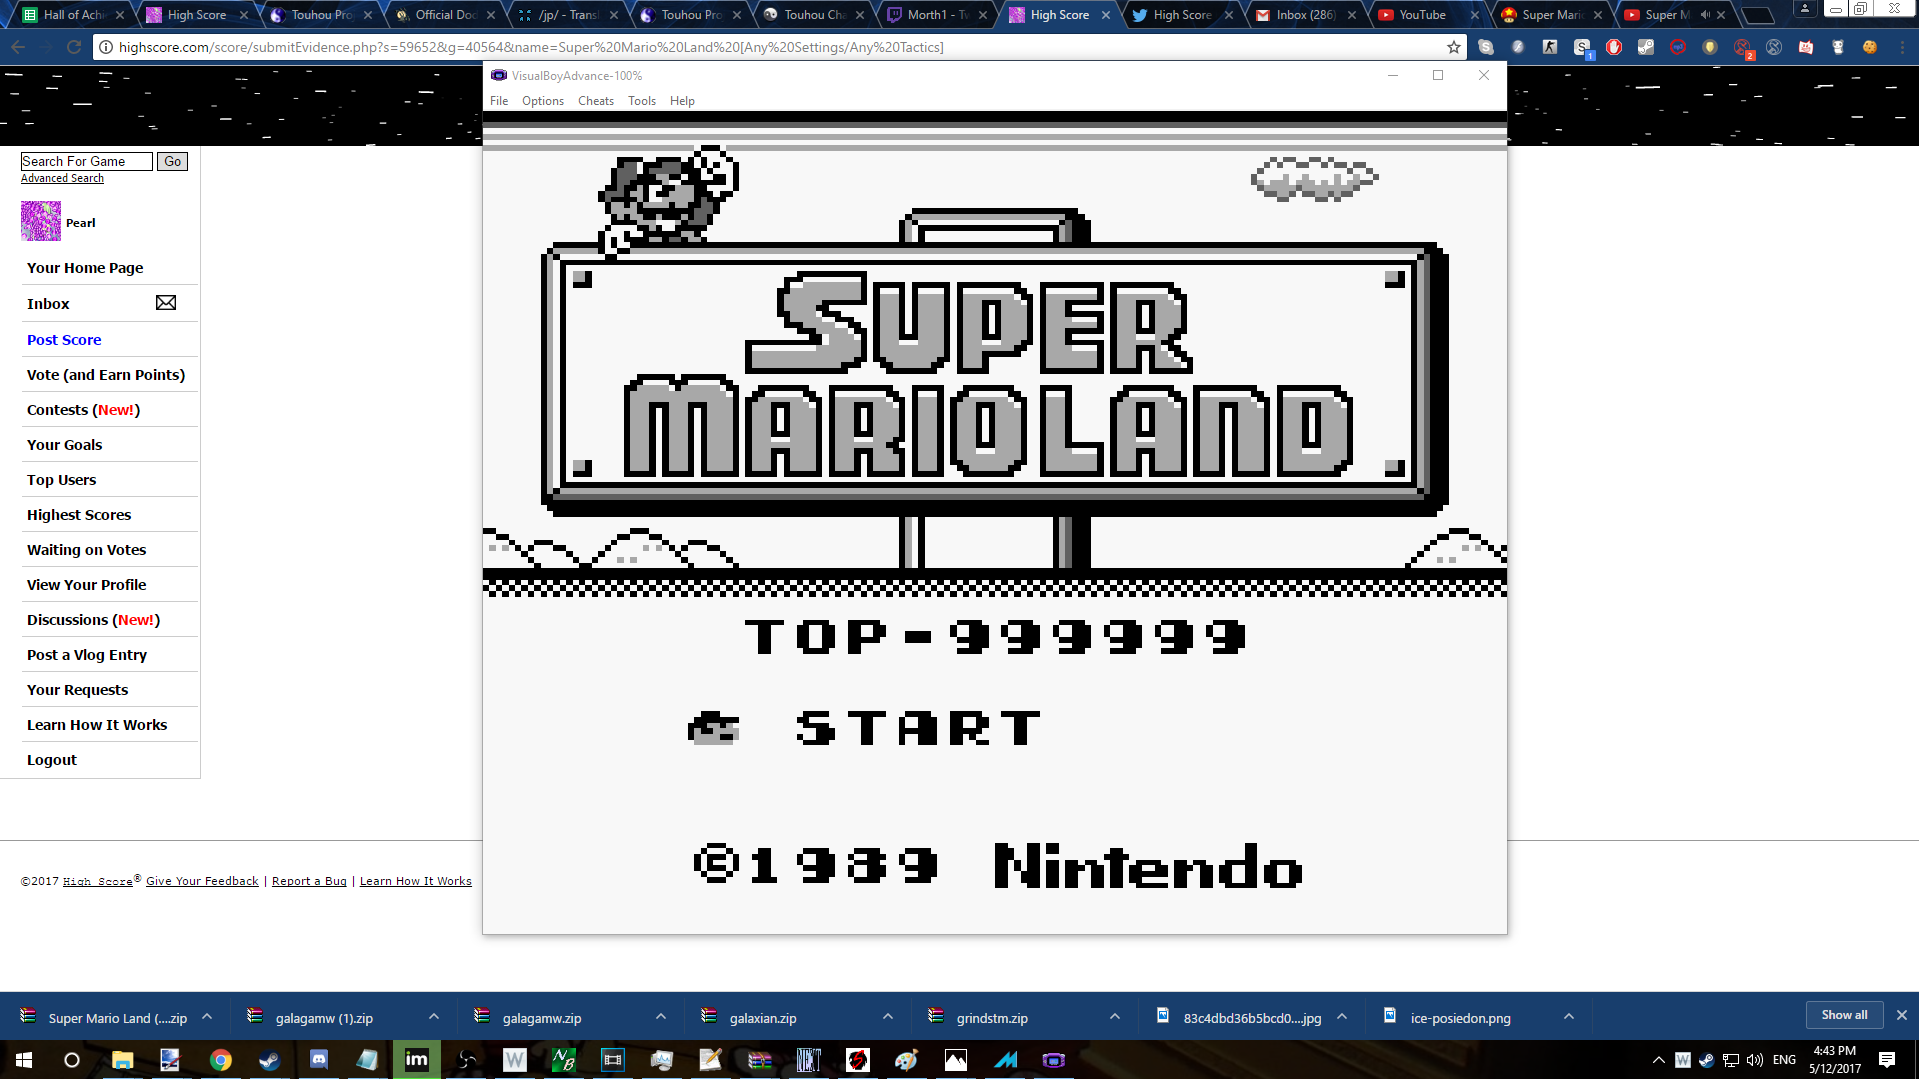 Super Mario Land [Any Settings/Any Tactics] 999,999 points